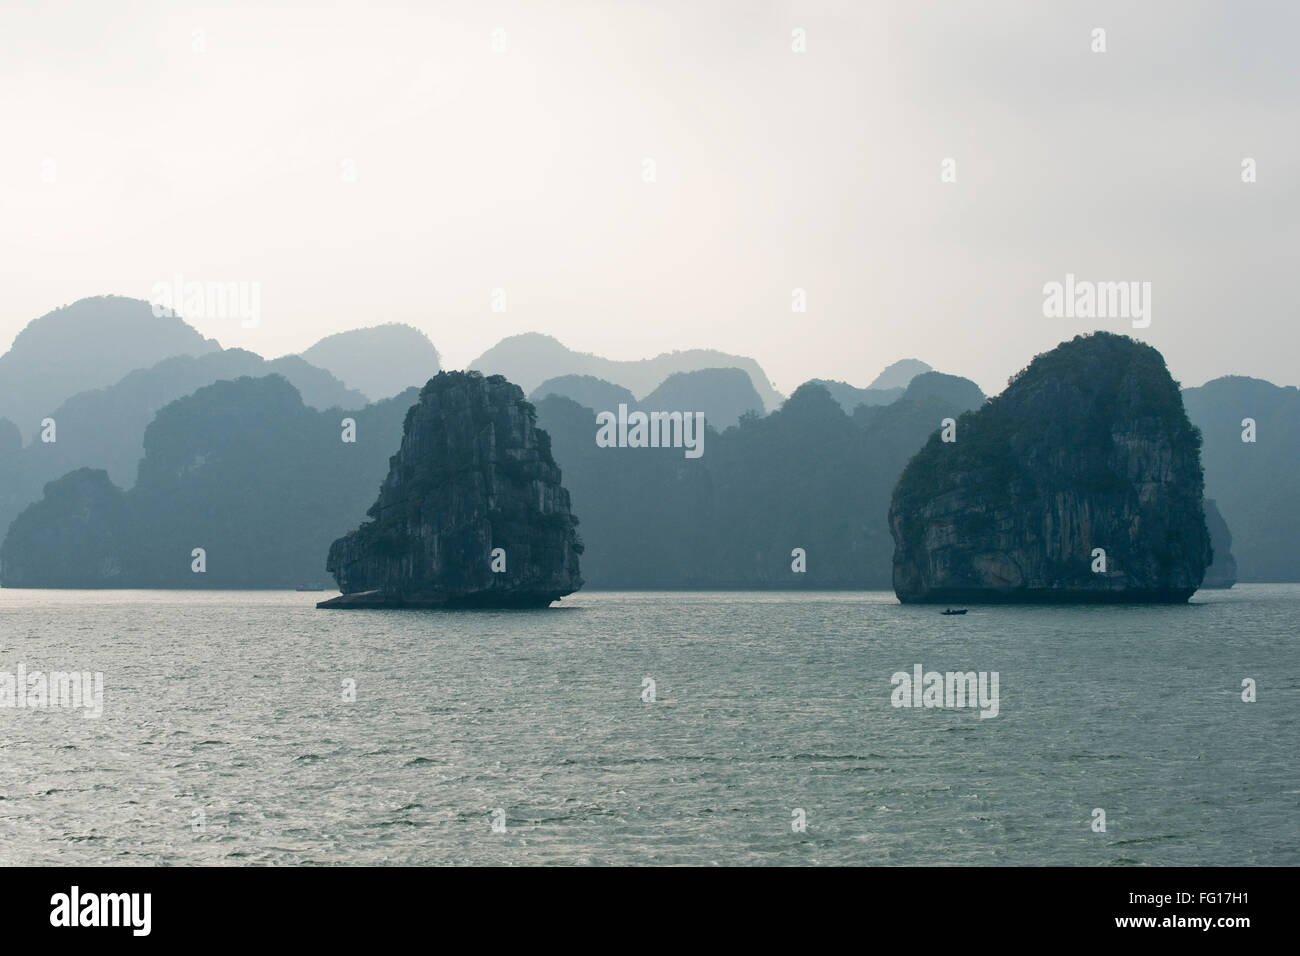 Misty image of receding  limestone karsts or islands rising out of the sea in Halong Bay, Northern Vietnam, - Stock Image